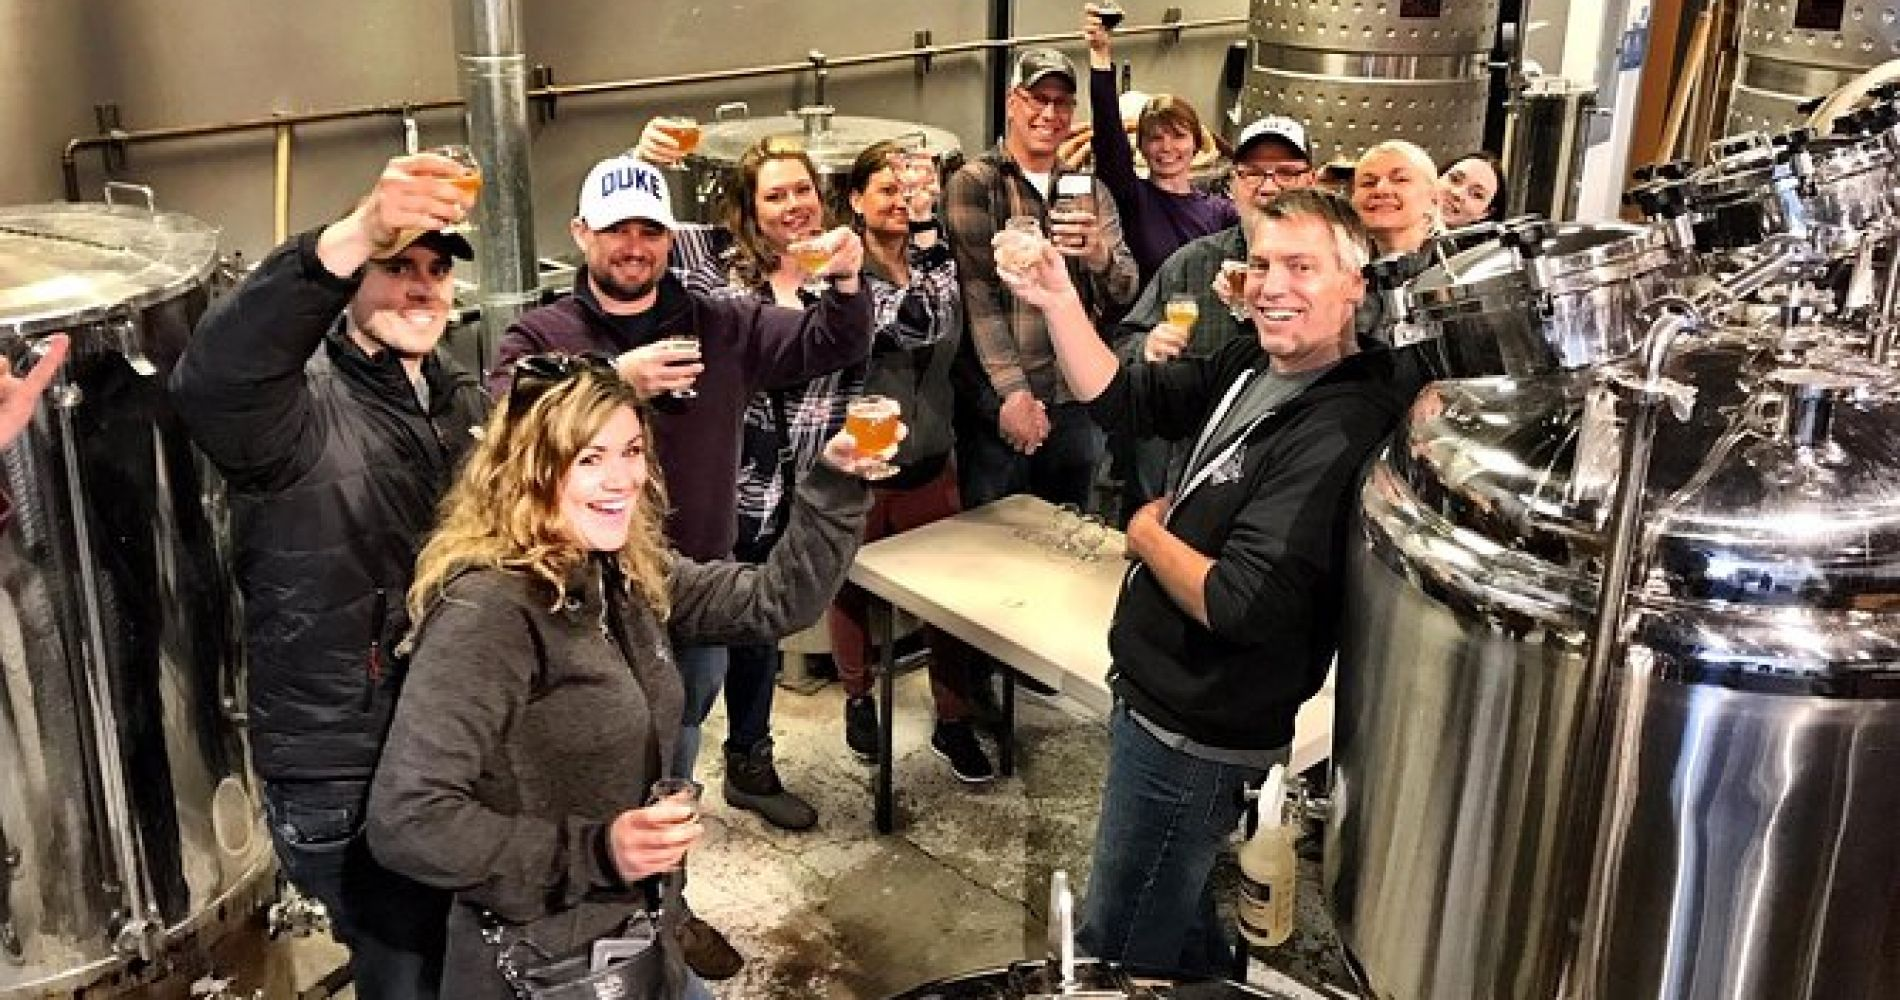 Anchorage Brews Experience in Alaska for Two